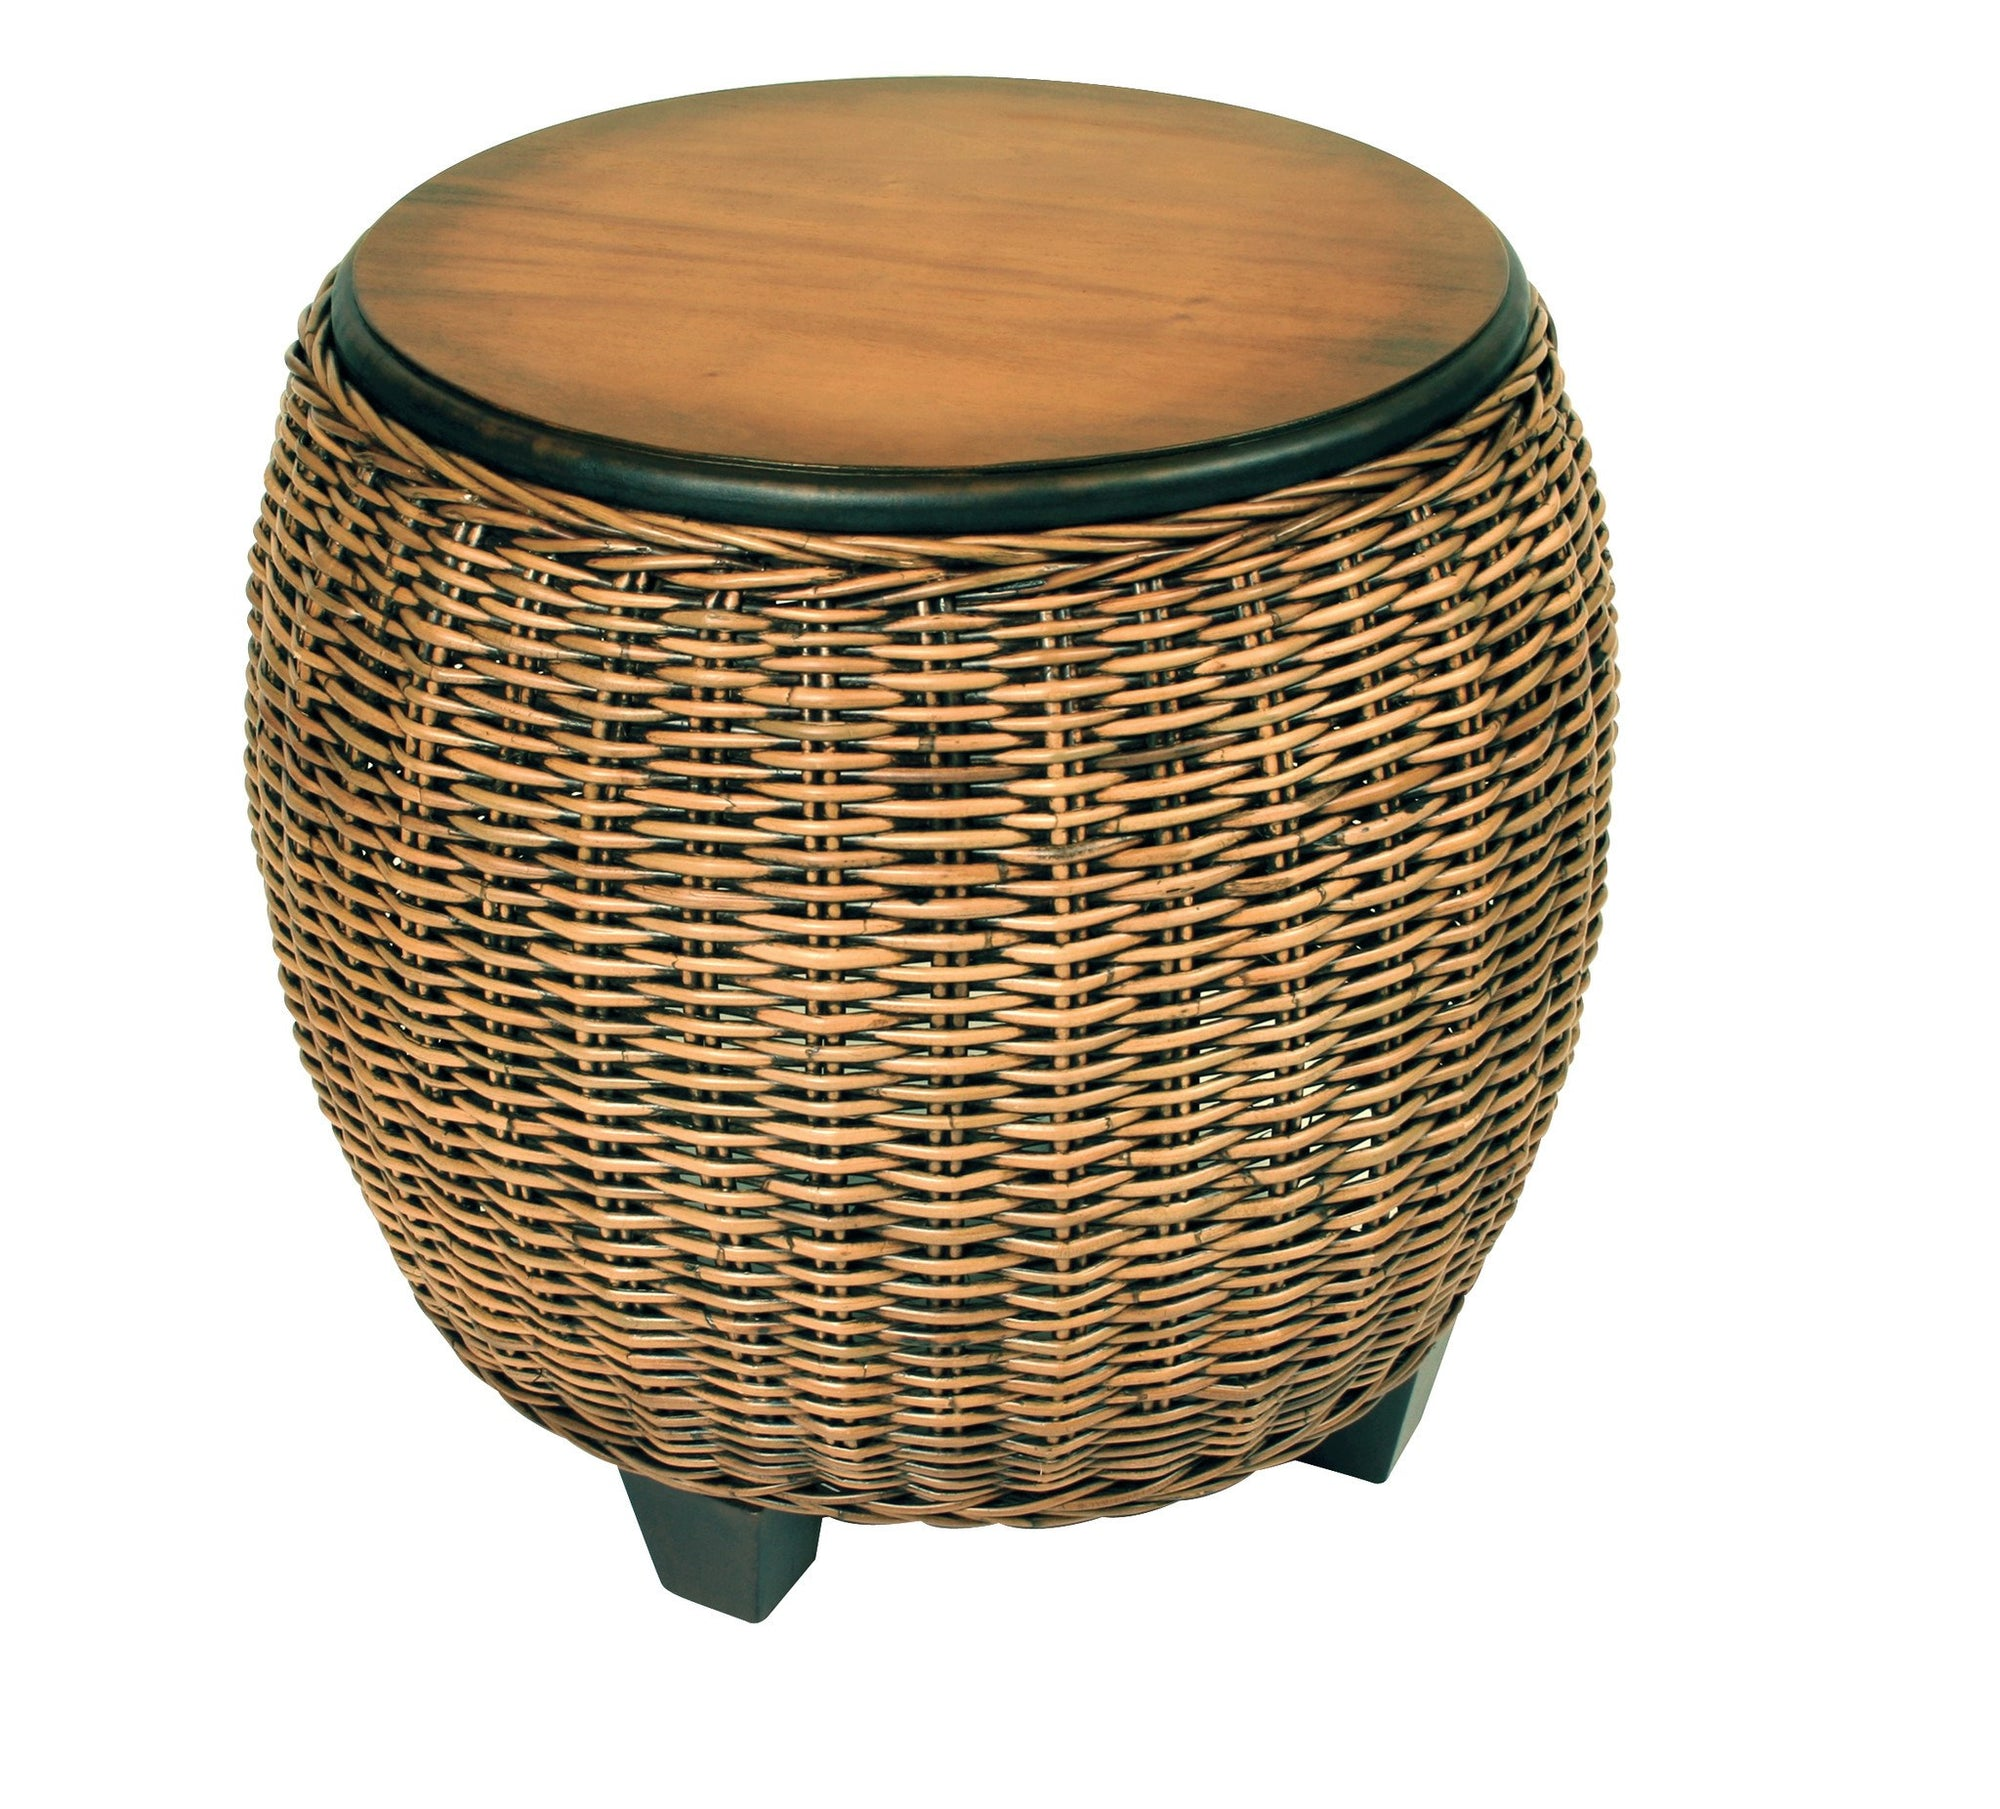 Designer Wicker & Rattan By Tribor Clarissa Porch End Table End Table - Rattan Imports